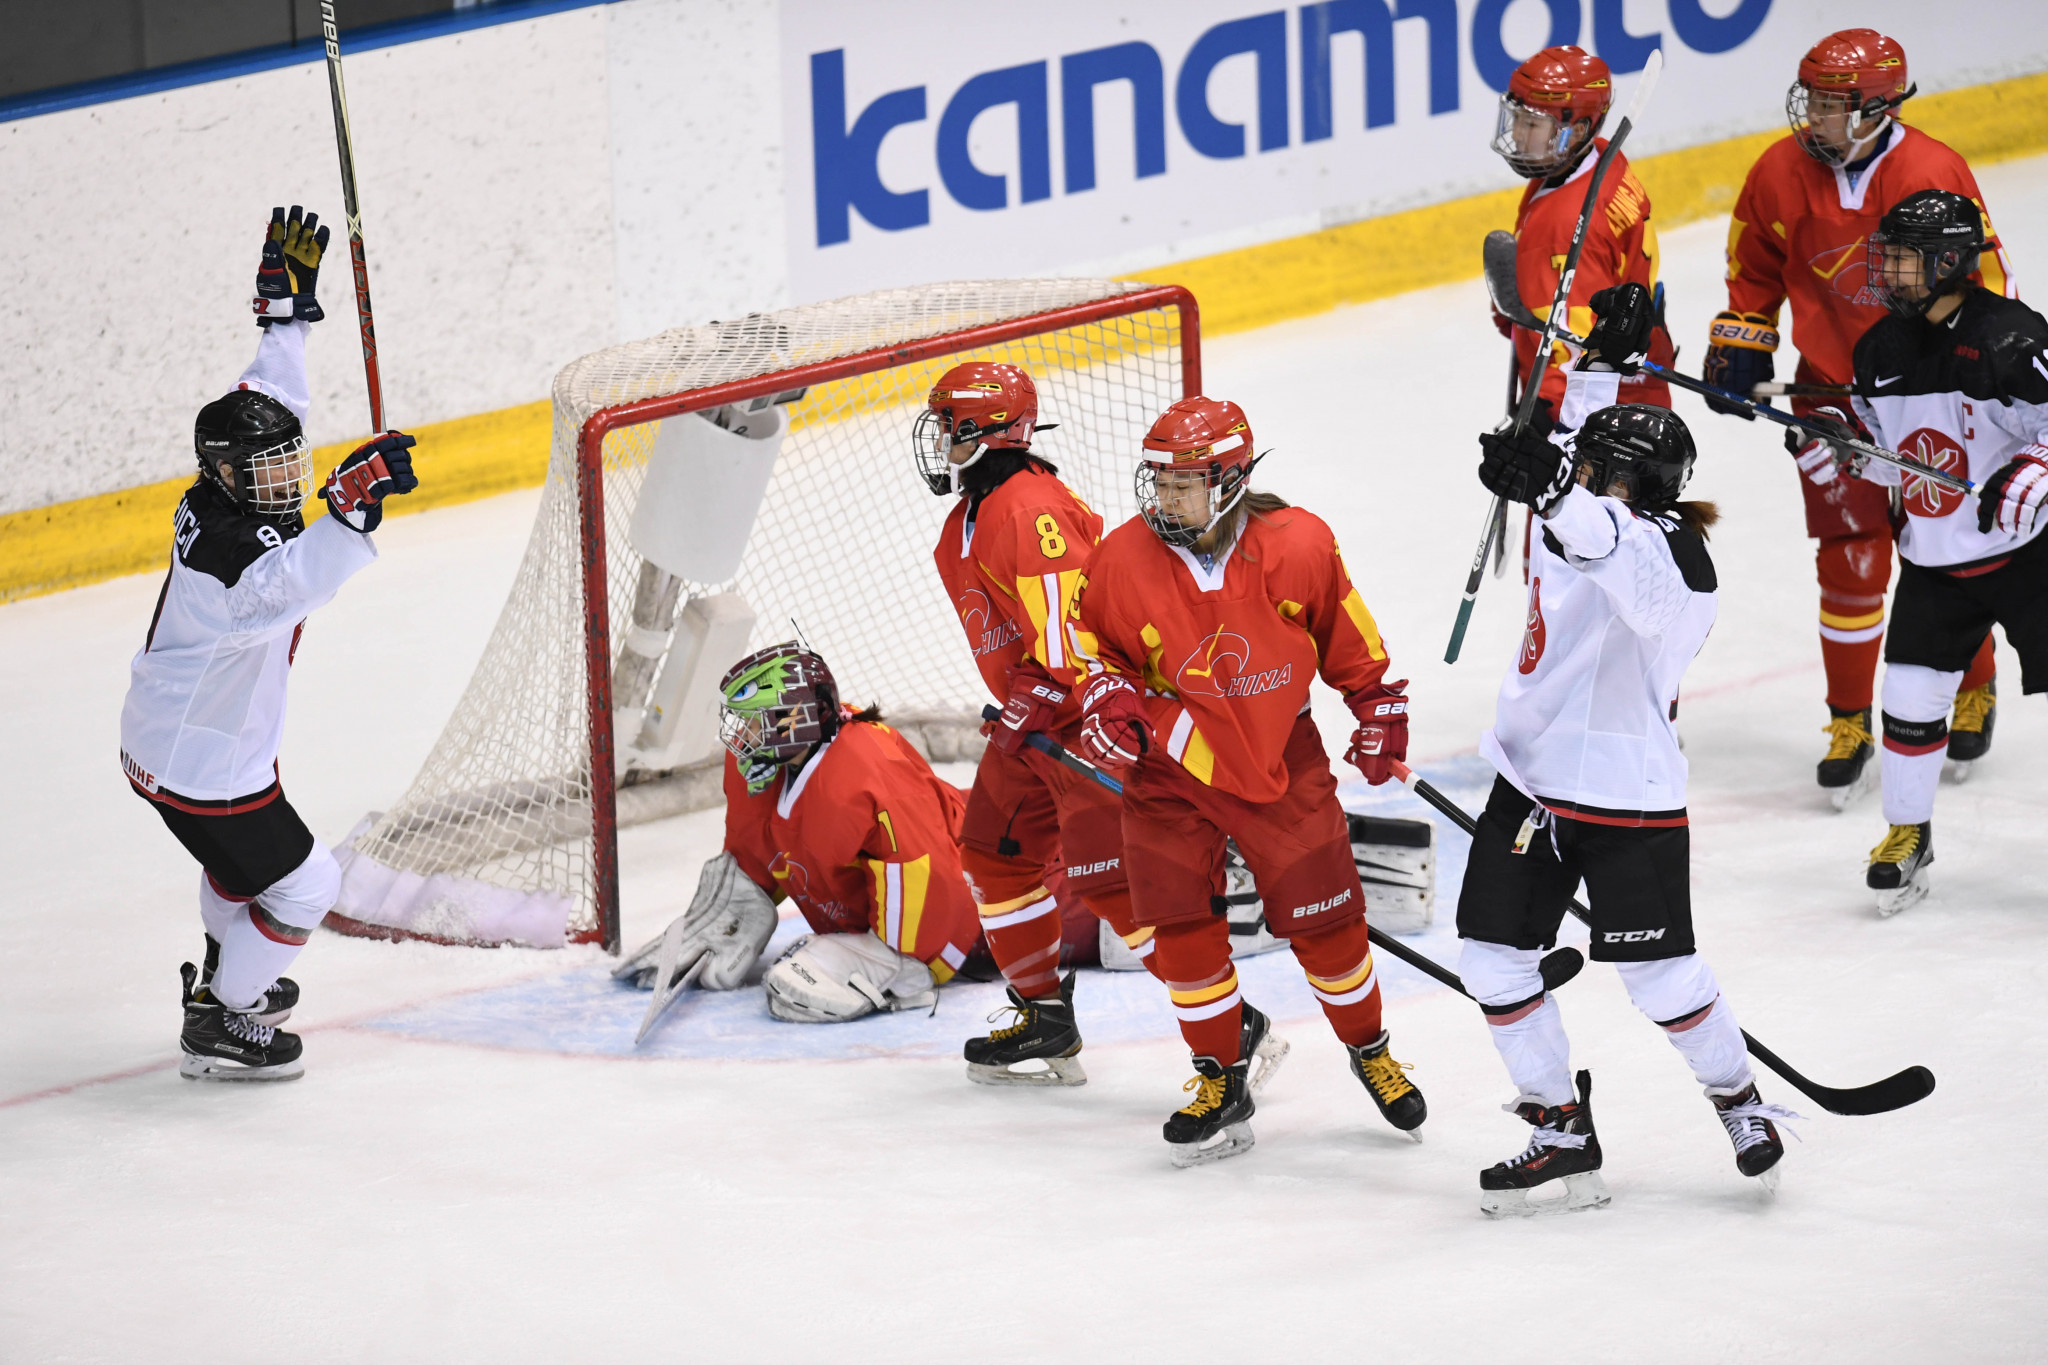 Chinese ice hockey told to improve to justify Beijing 2022 host nation spot